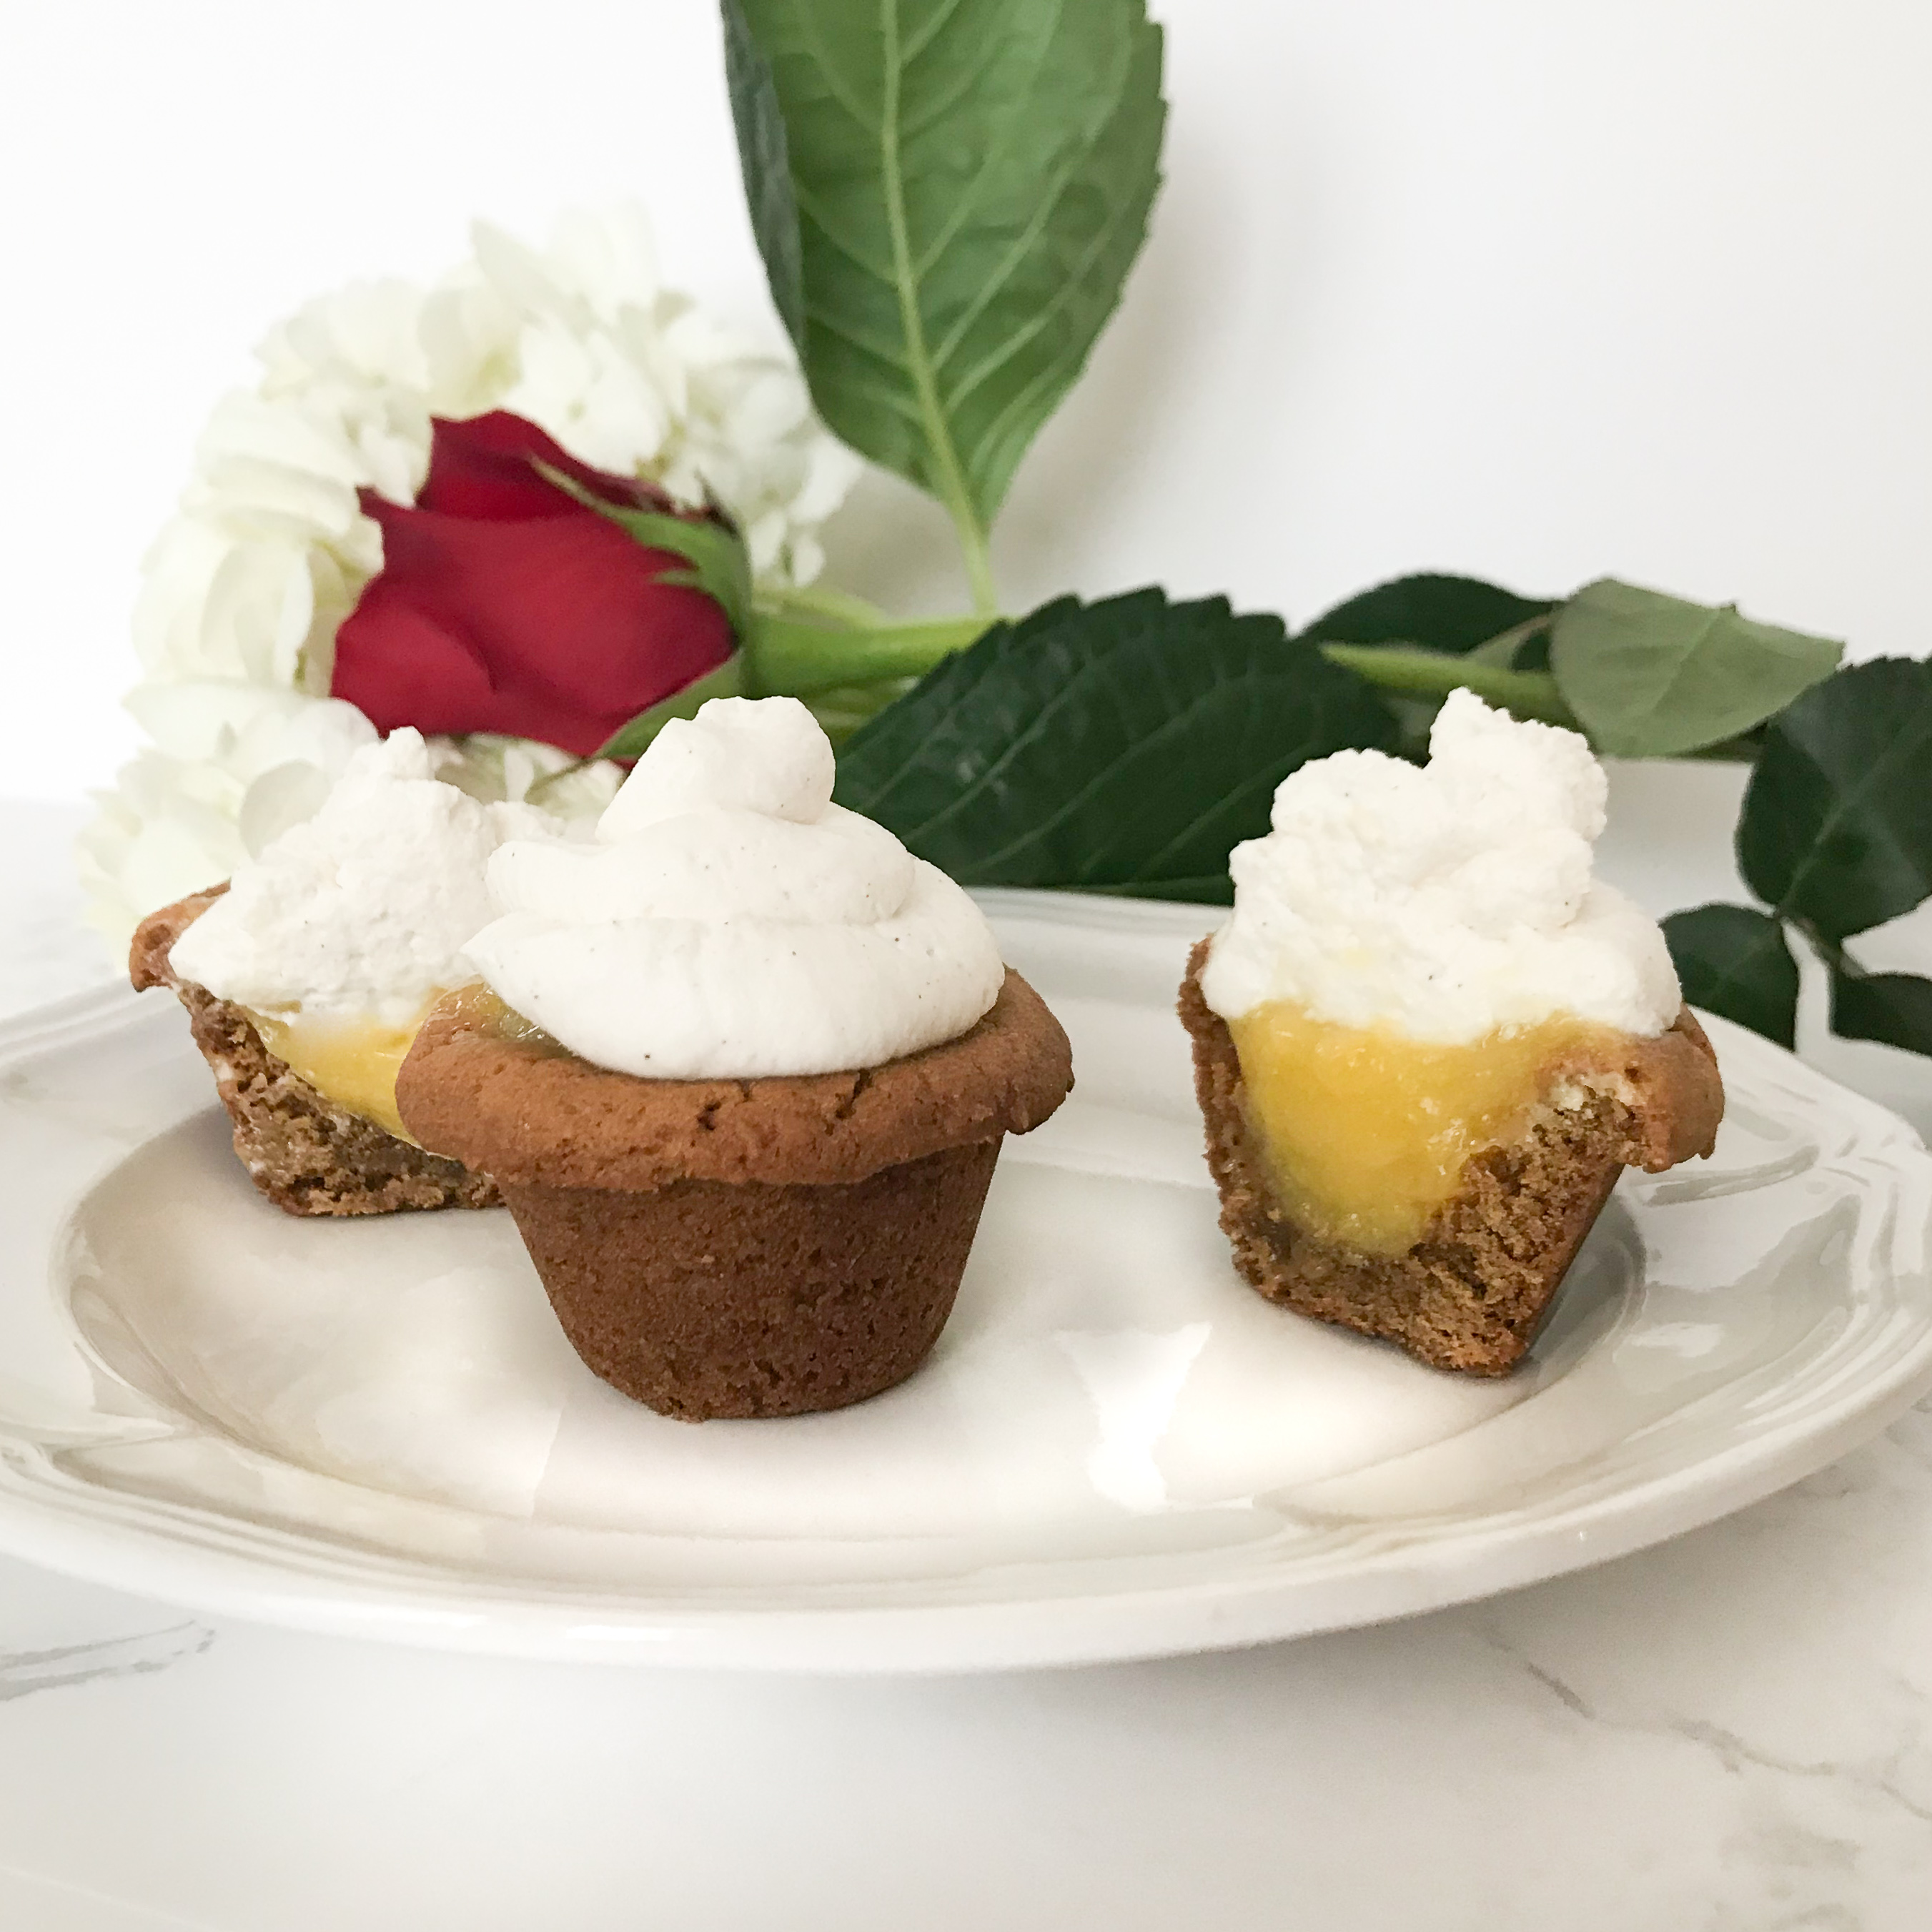 Lemony Ginger Cups with Cannoli Cream